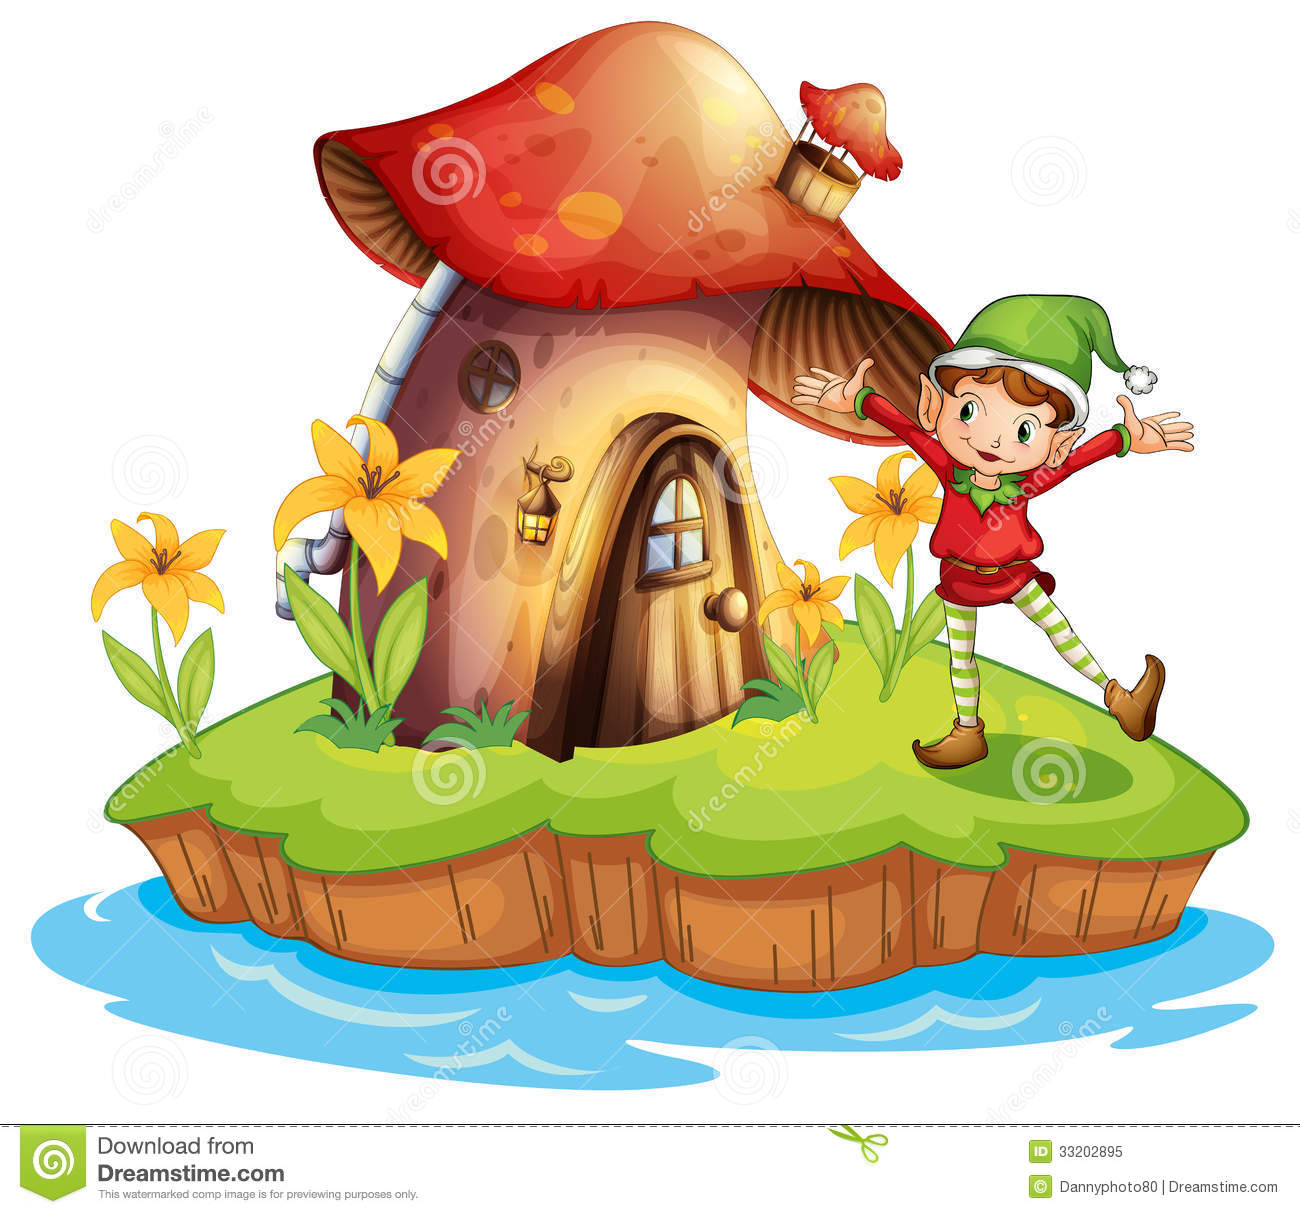 a dwarf outside a mushroom house royalty free stock photo pulling weeds clip art pulling weeds clip art